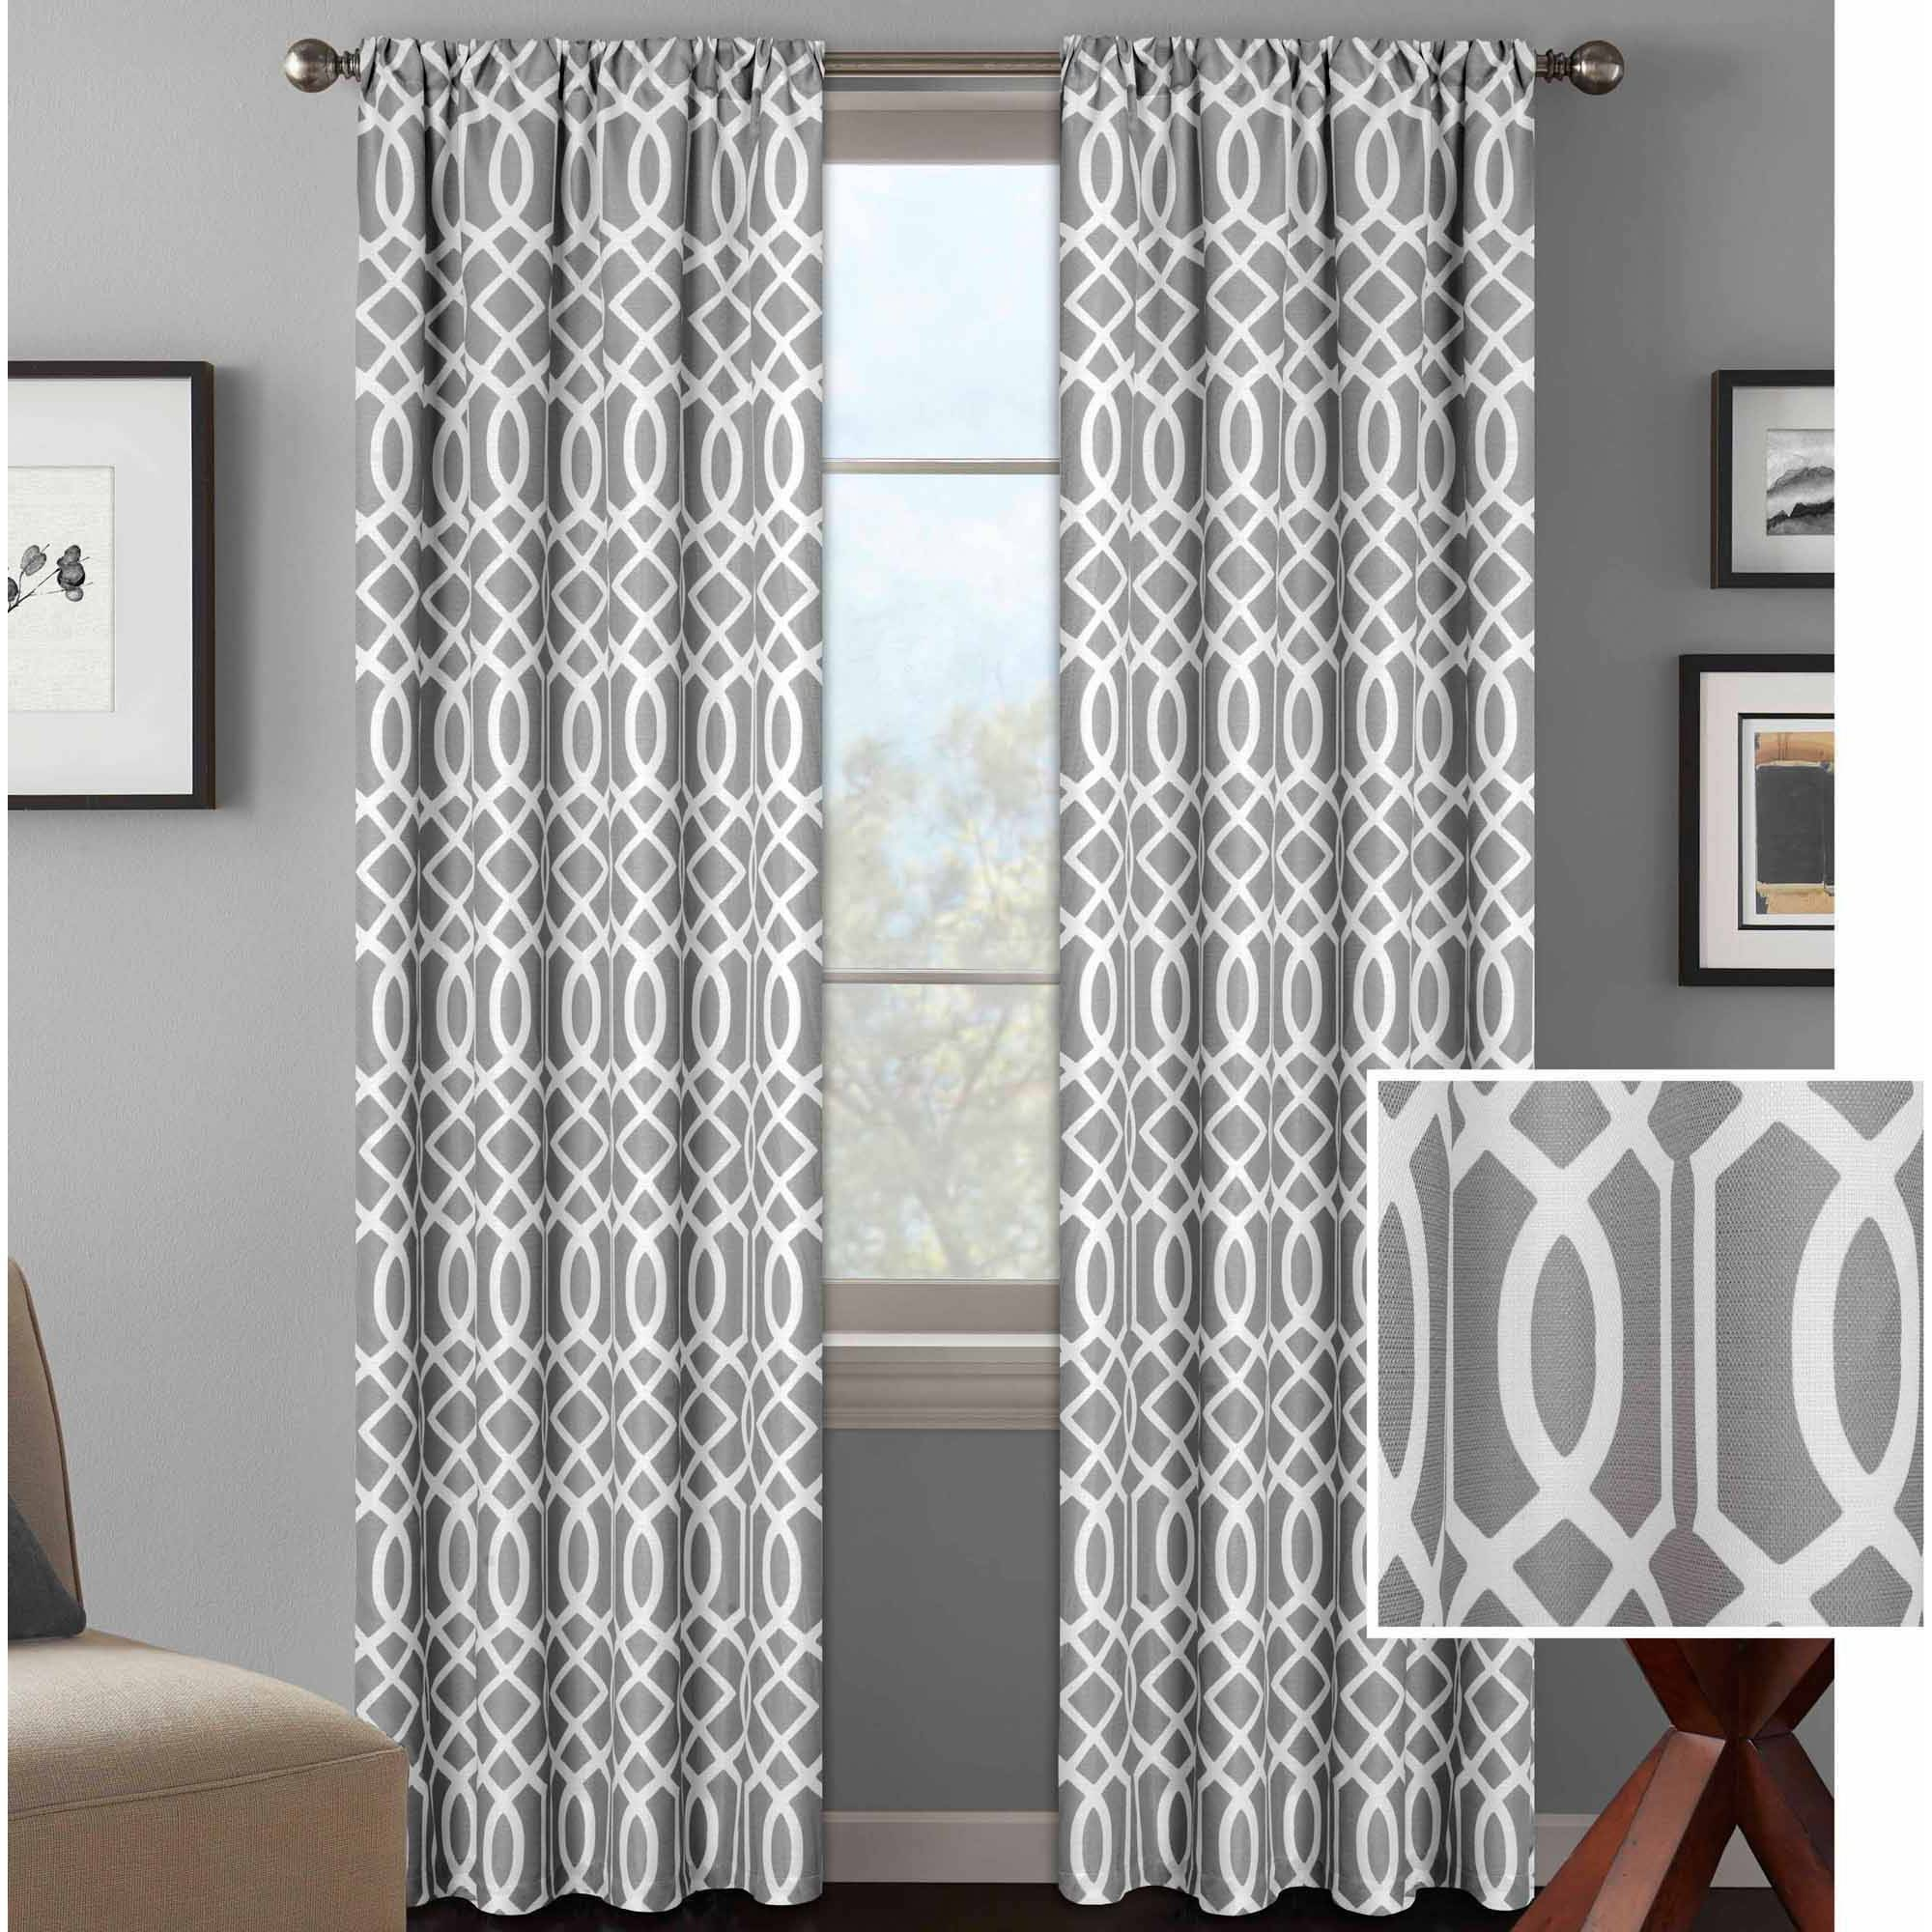 Better Homes And Gardens Stripes Curtain Panel With Regard To Ombre Stripe Yarn Dyed Cotton Window Curtain Panel Pairs (View 14 of 20)